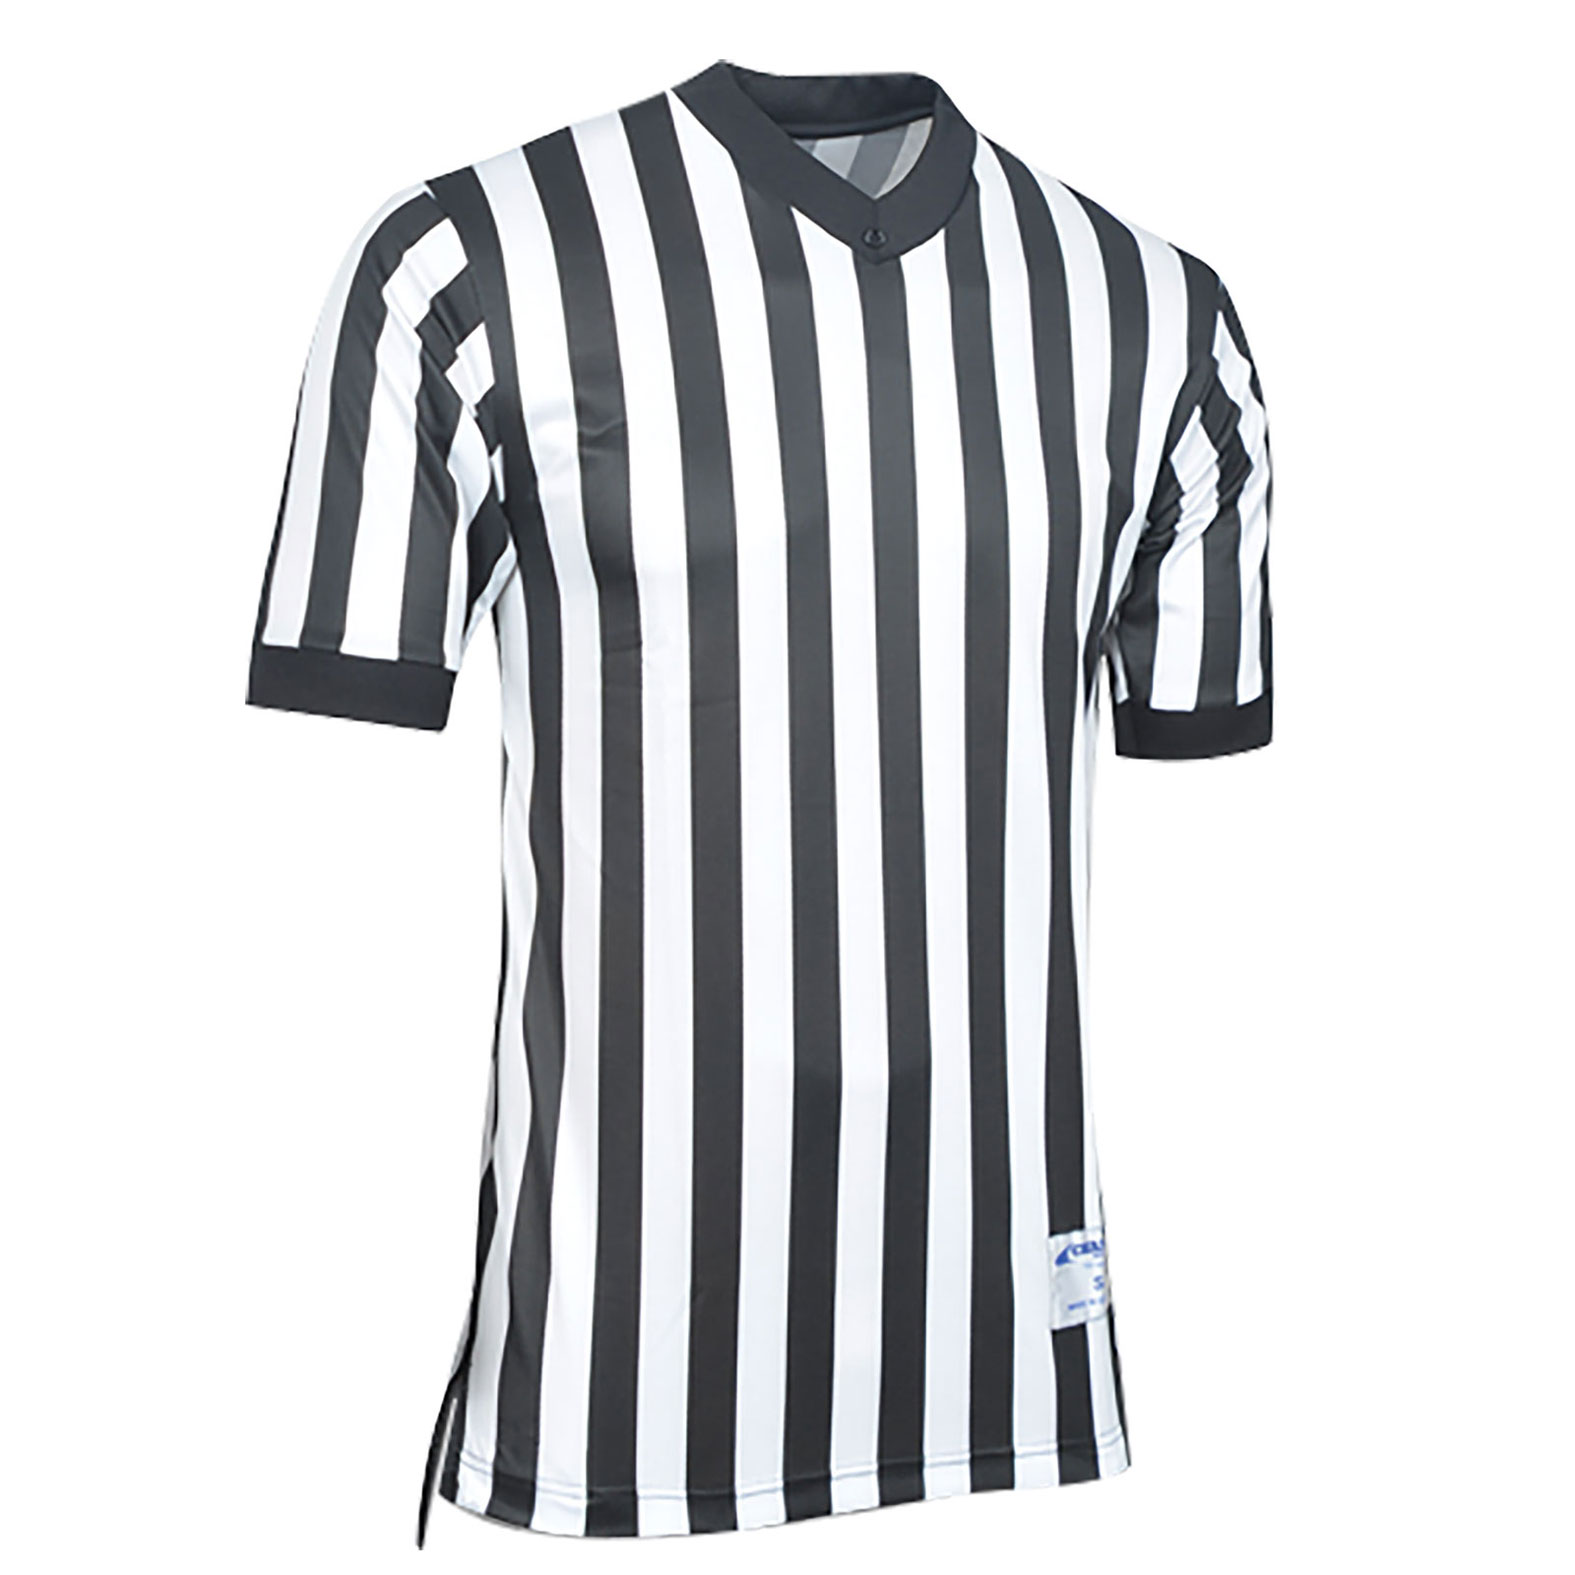 Whistle Basketball Officials Dri-Gear® Jersey